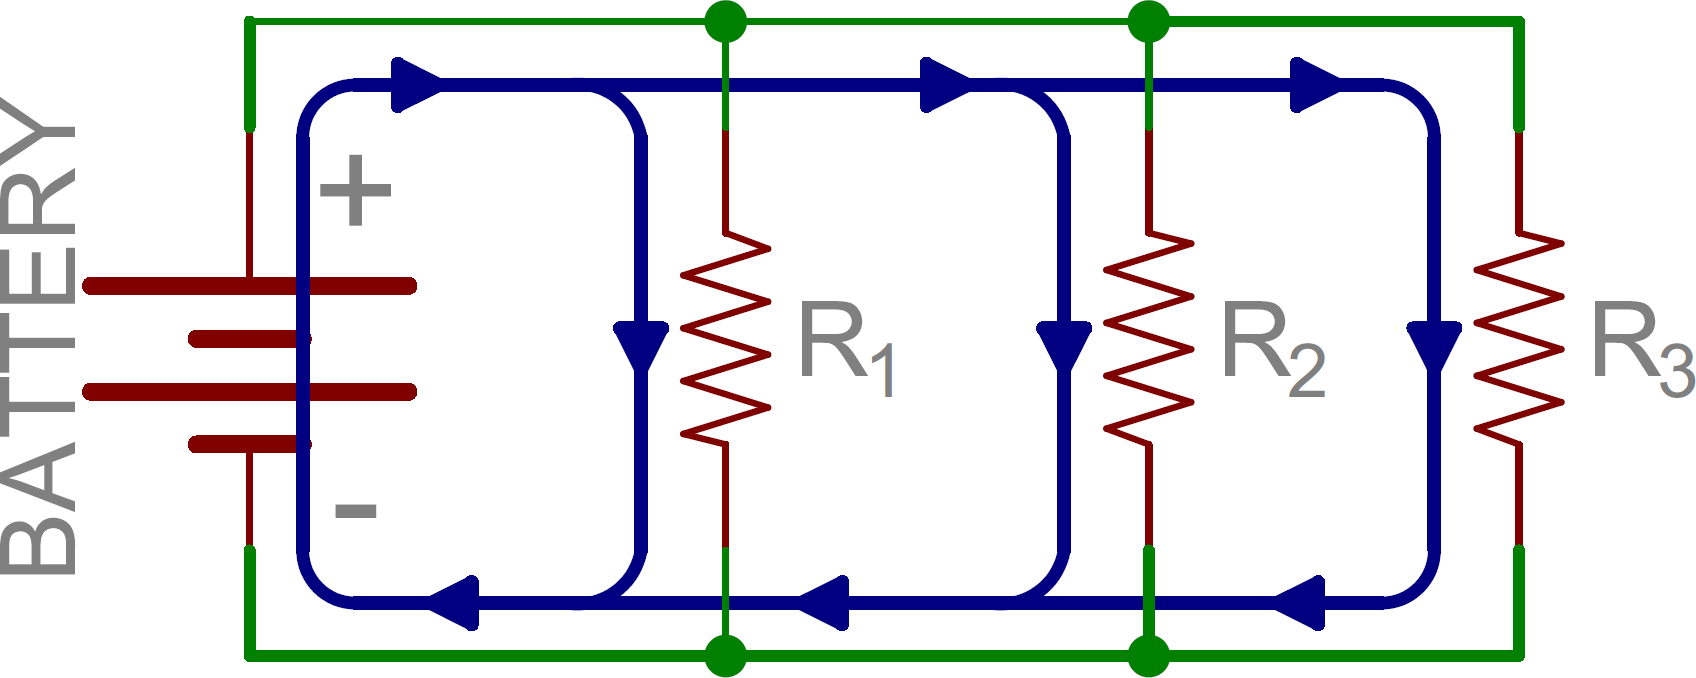 How To Detect Parallel Connections In A Circuit Diagram Quora What Is